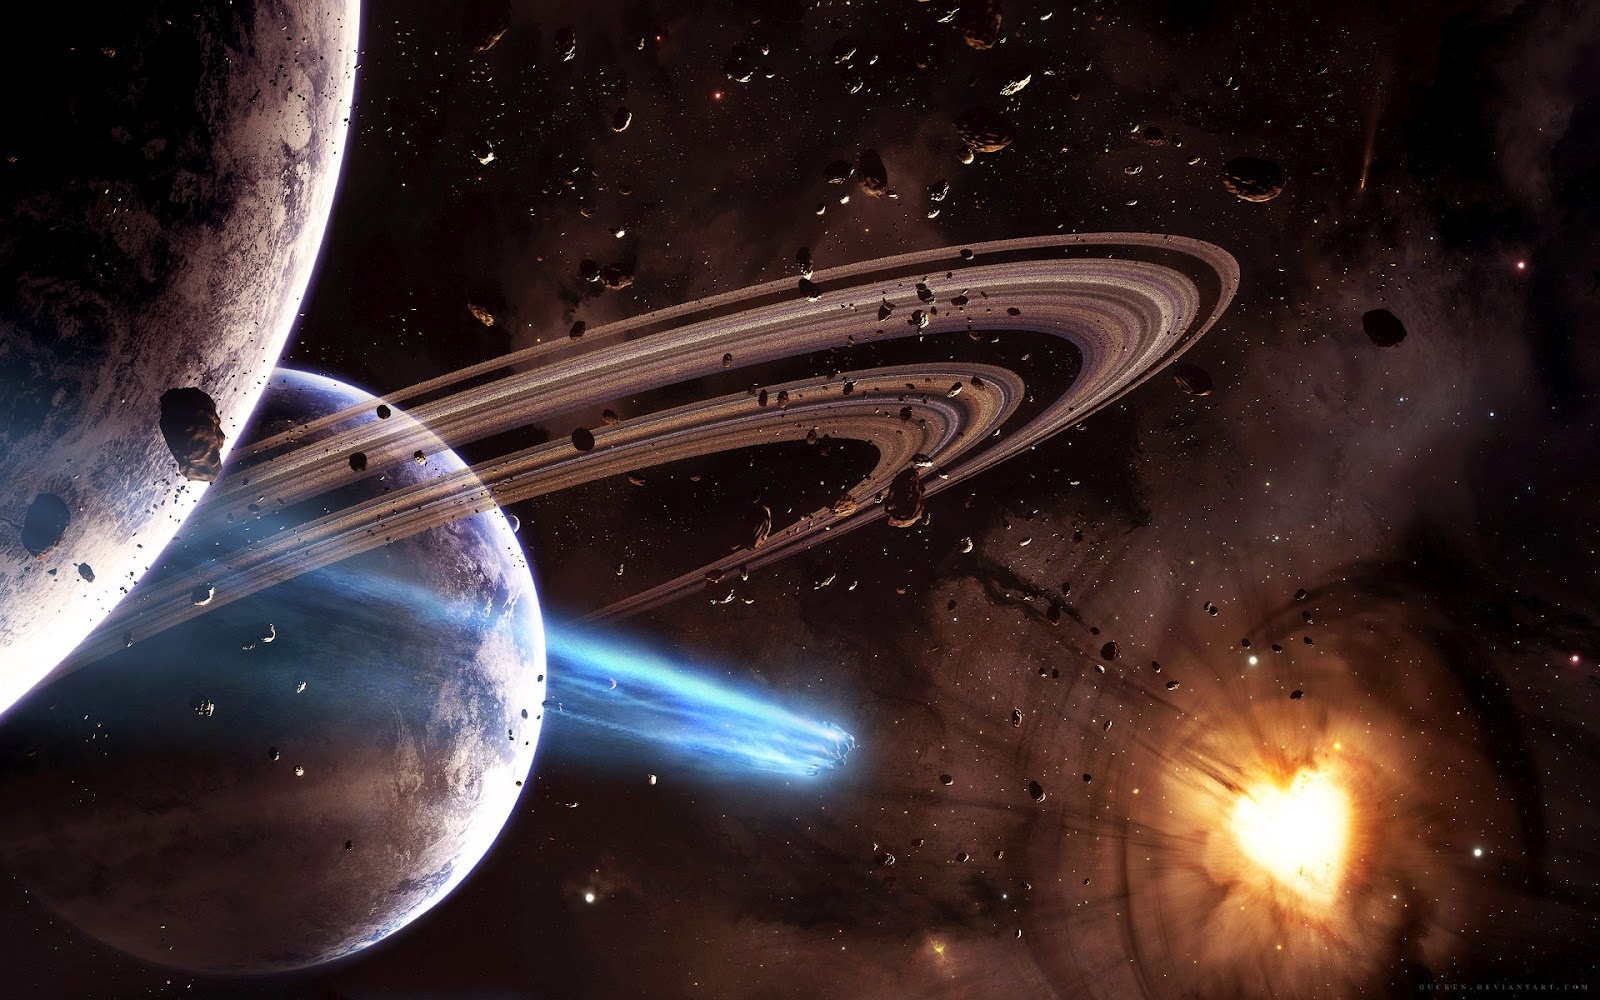 Top 34 Most Incredible And Amazing Space Wallpapers In HD - For More Wallpapers Just Click On Image